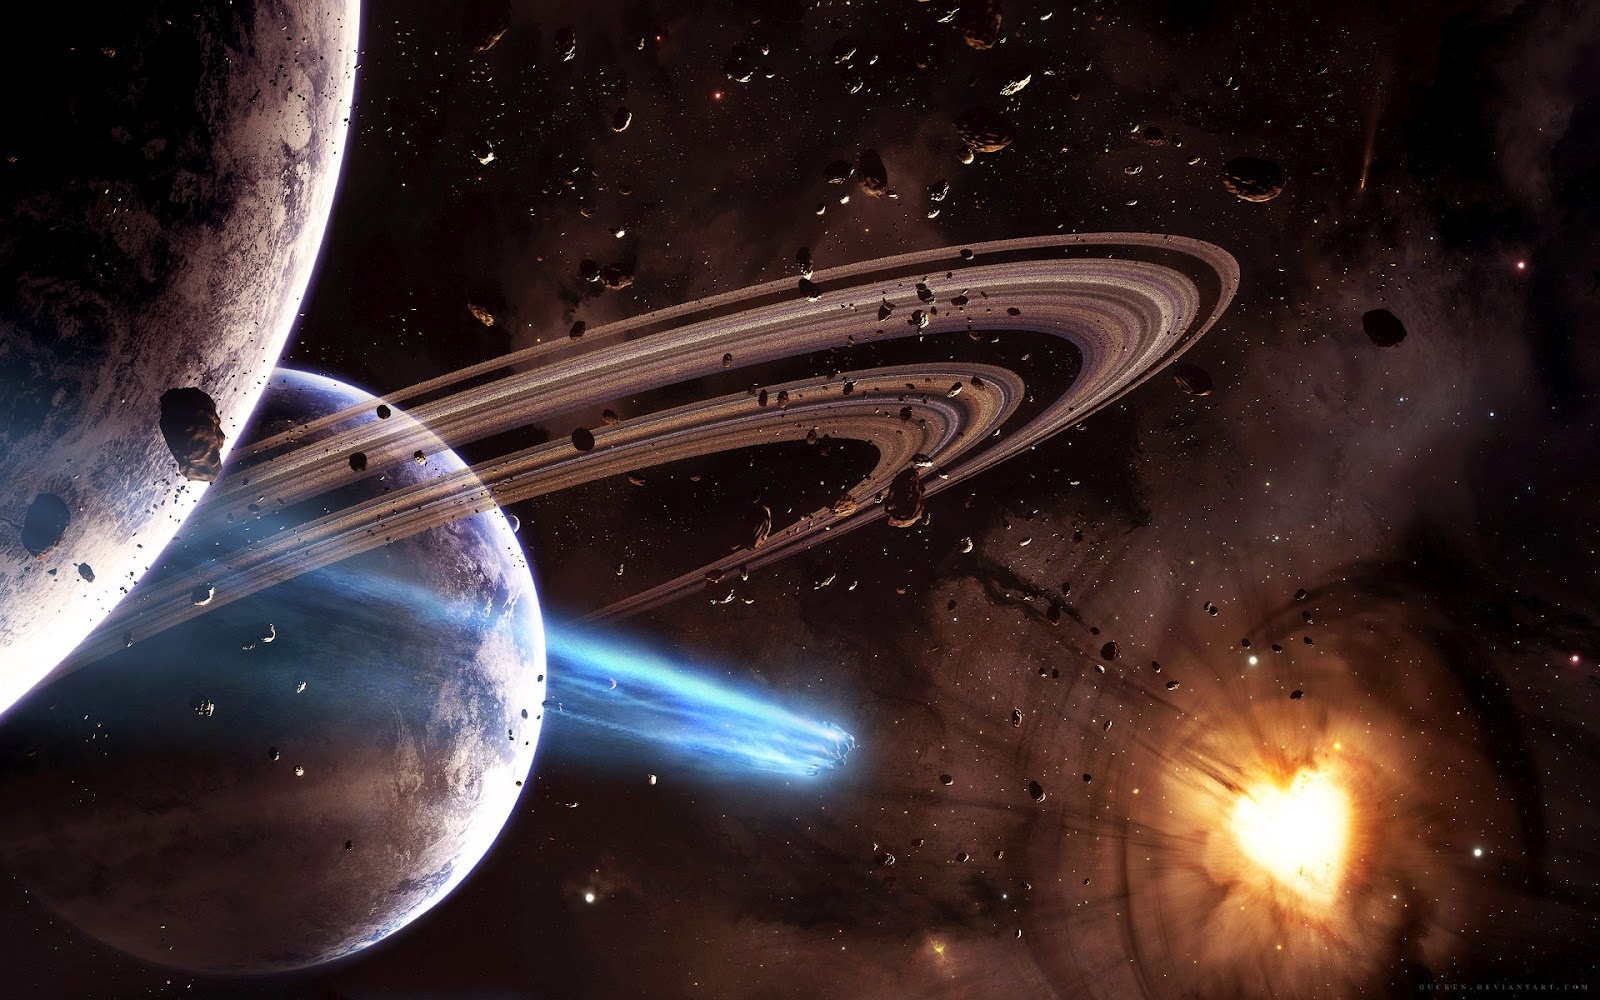 Top 34 Most Incredible And Amazing Space Wallpapers In HD - For More Wallpapers Just Click On Image